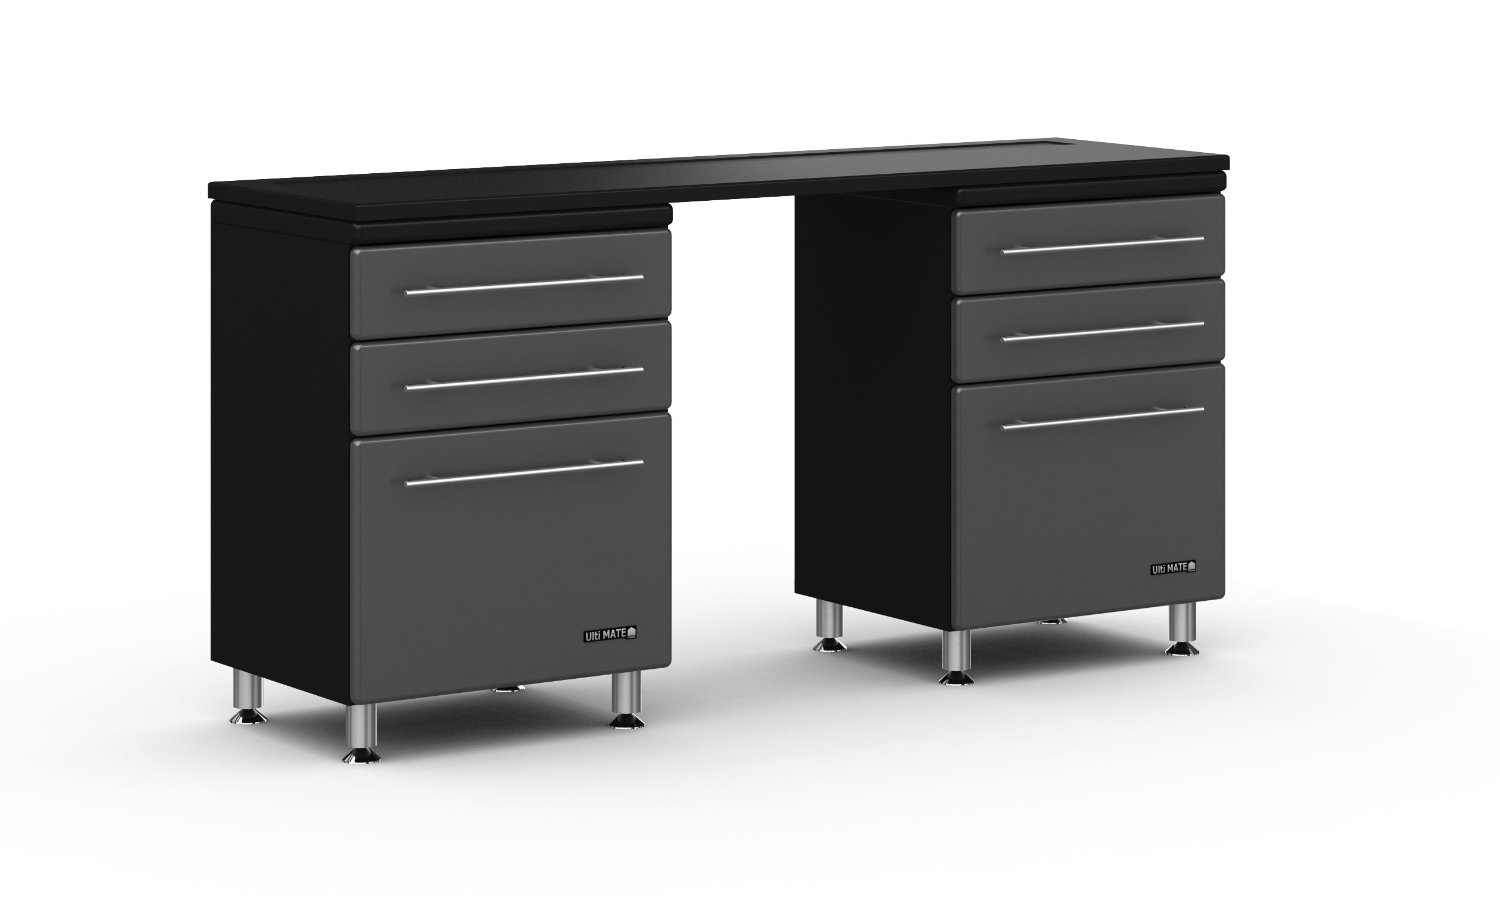 "Ulti-MATE Storage 3-Piece Kit - GA-0410 -Three (3) Piece Cabinet Kit Includes; 2-Three Drawer Base Cabinets and 1- Worktop 6' Bench Surface - Strong 3/4"" Cabinet Construction - Oversized Storage Capacity - Ball Bearing Drawer Glides For Smooth Operation And 50LB Load Rating - Brushed Chrome Cabinet"